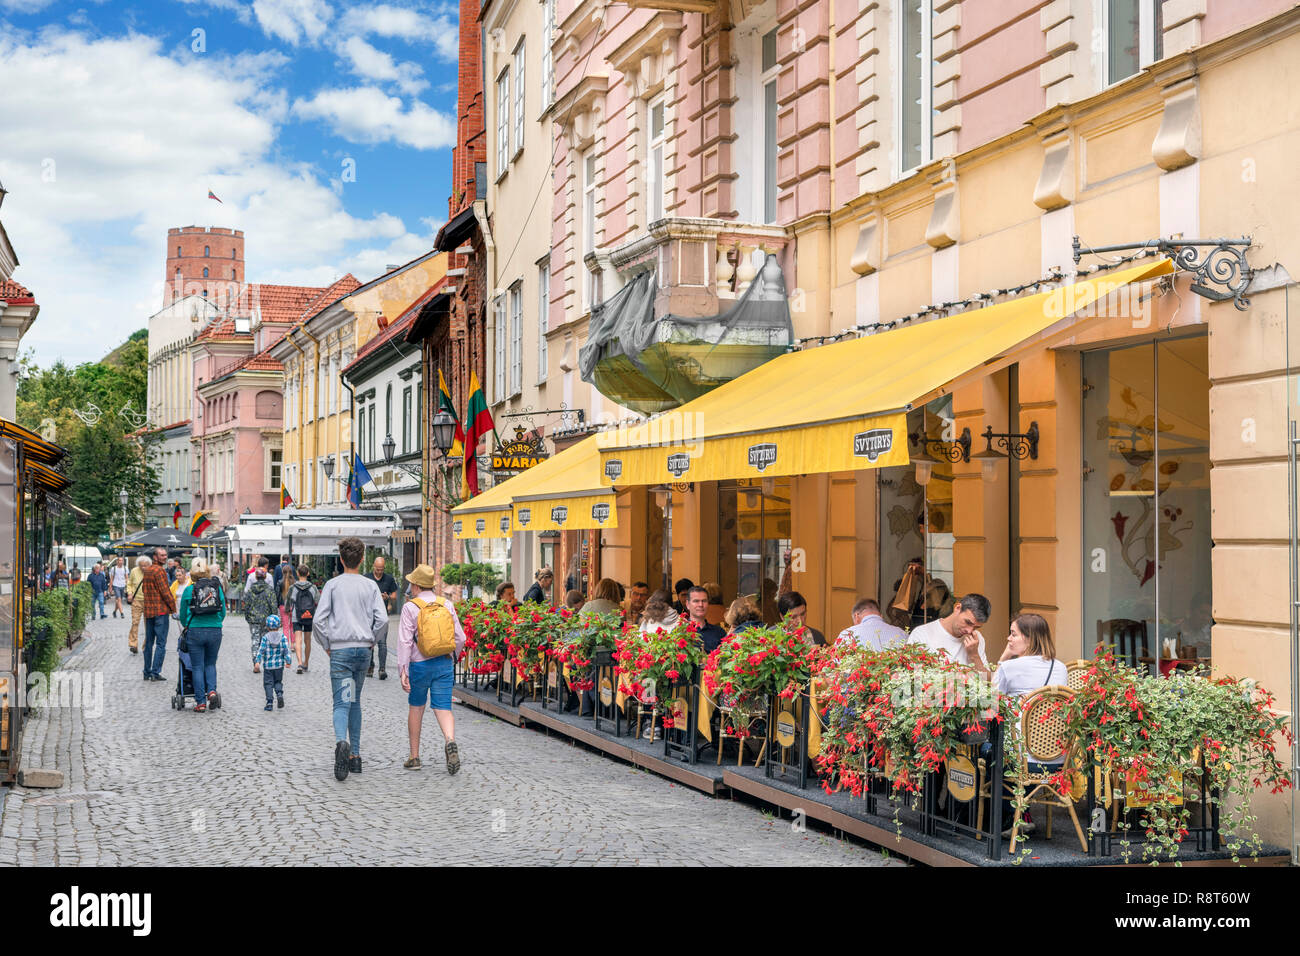 Restaurant and shops on Pilies Street (Pilies Gatvė) in the Old Town, Vilnius, Lithuania - Stock Image